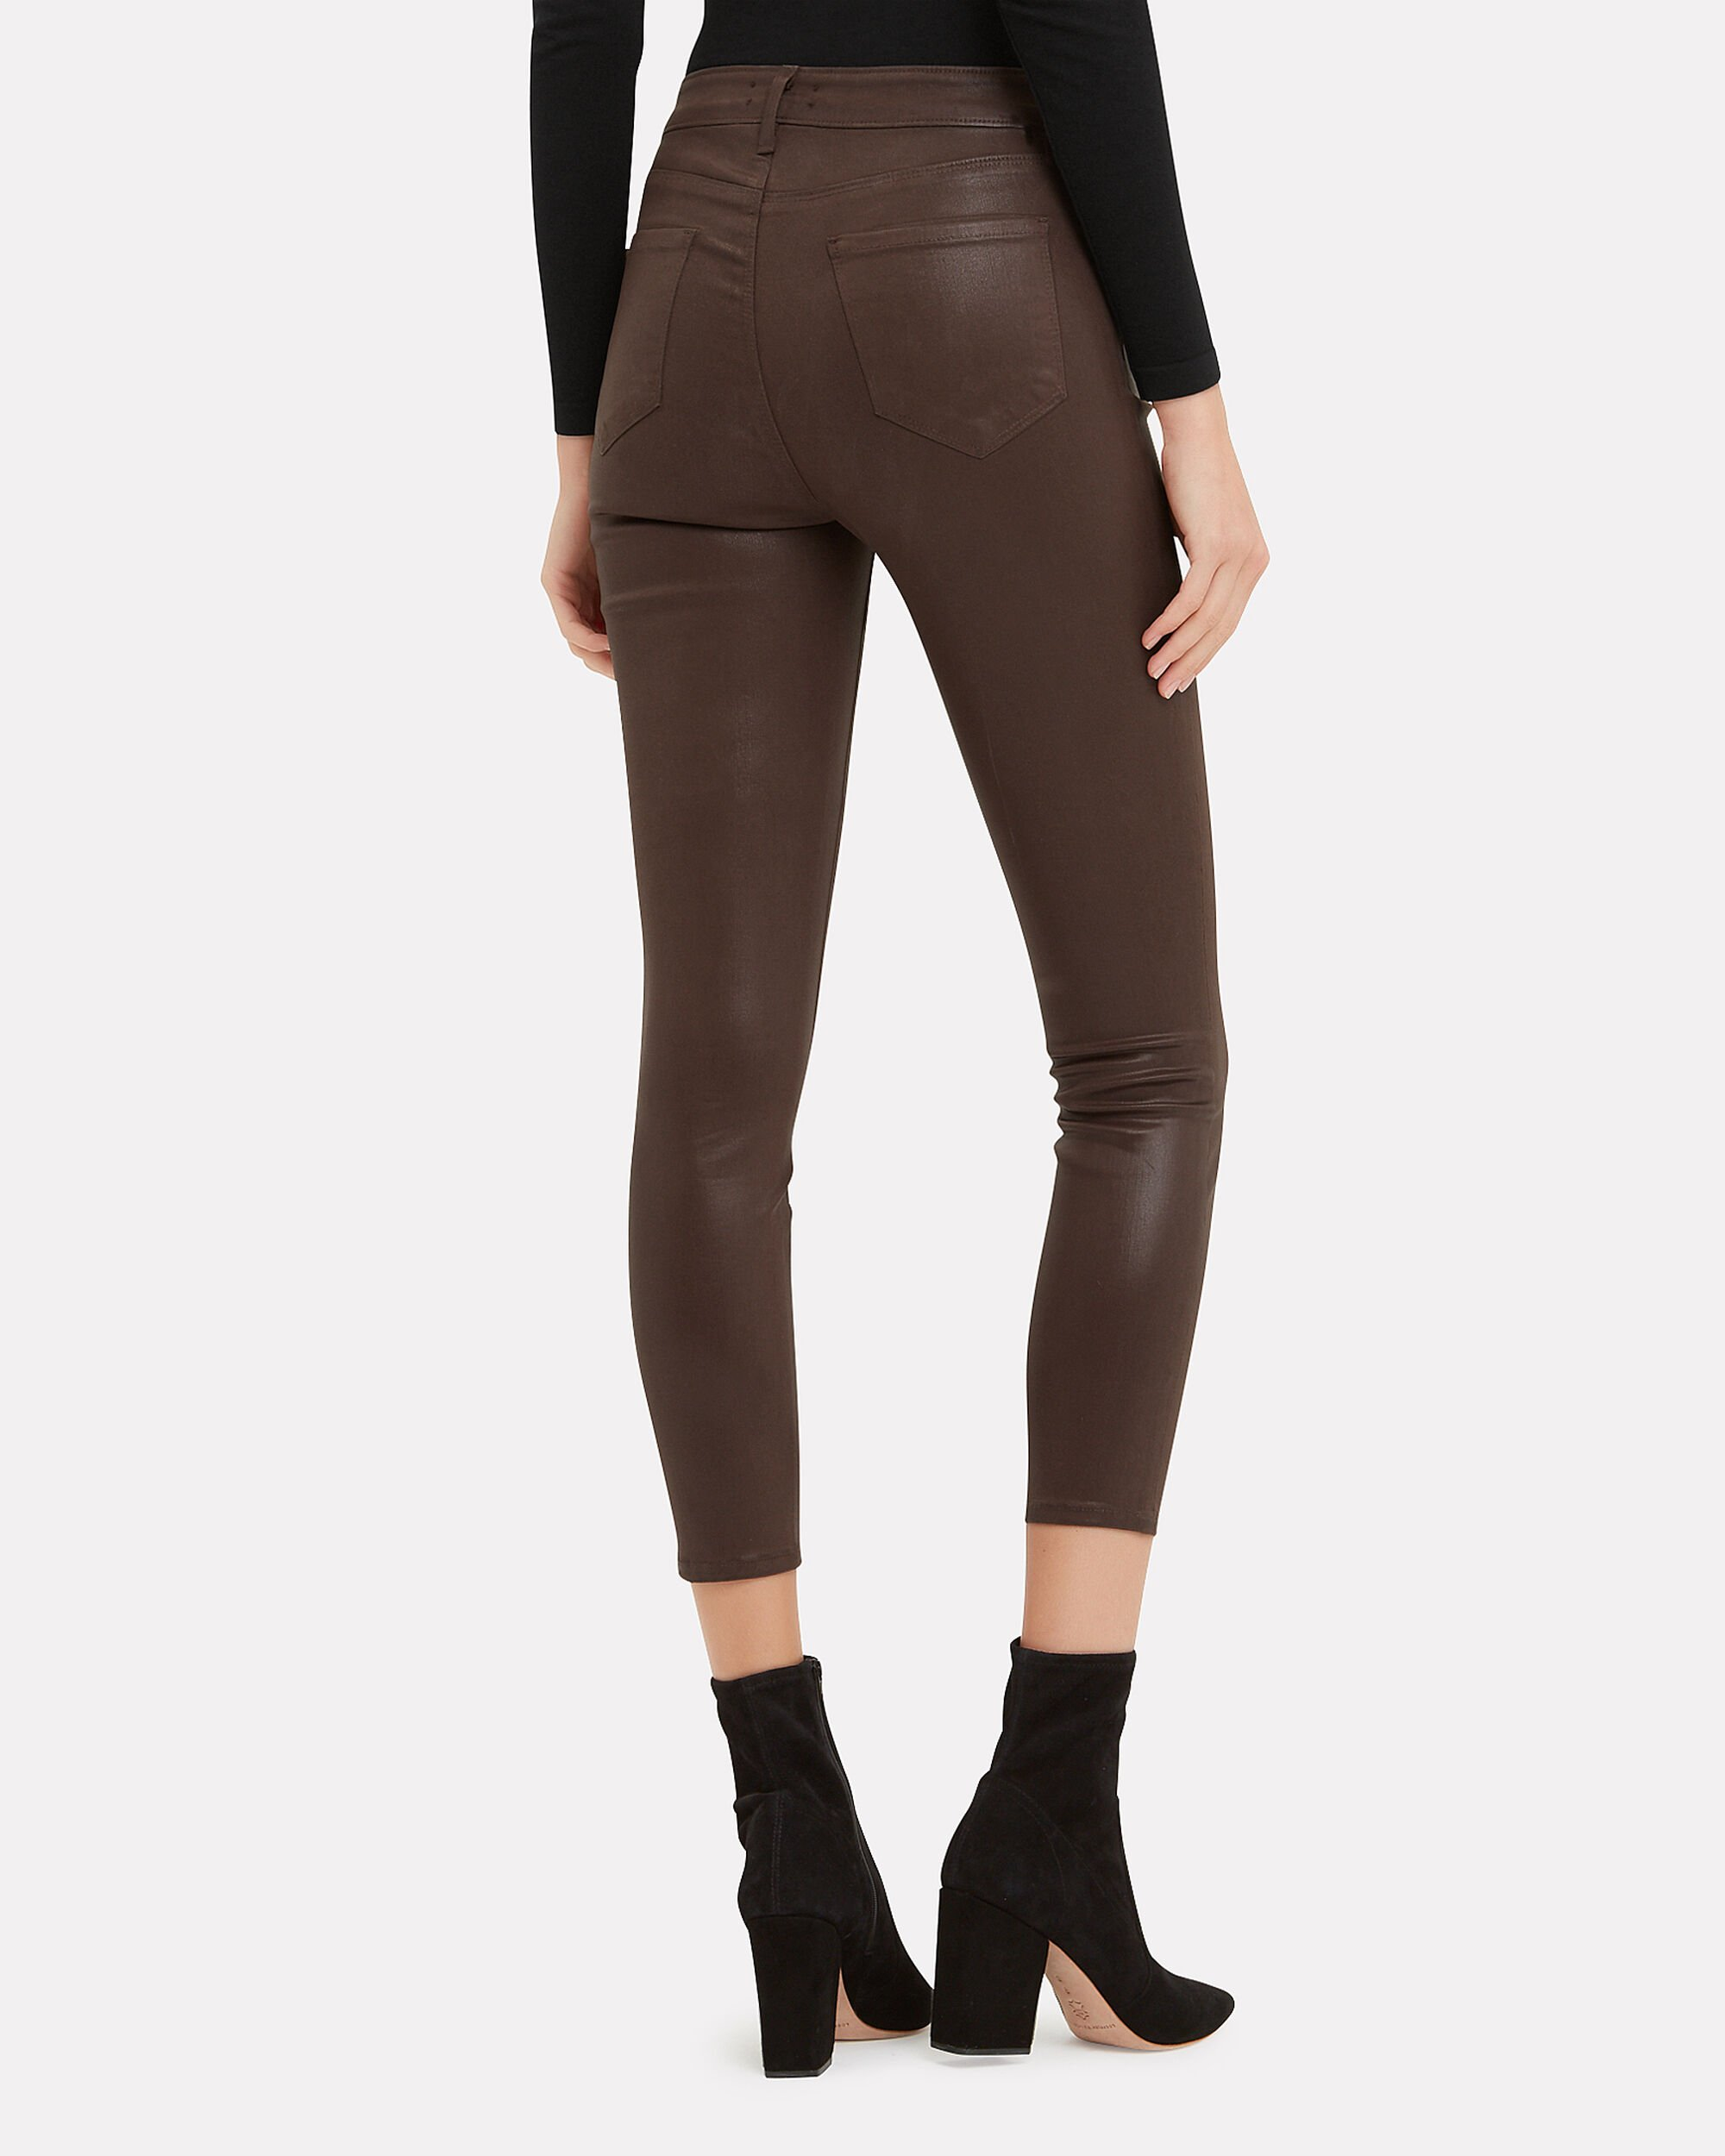 Margot Cocoa Coated High-Rise Ankle Skinny Jeans, COCOA BROWN, hi-res